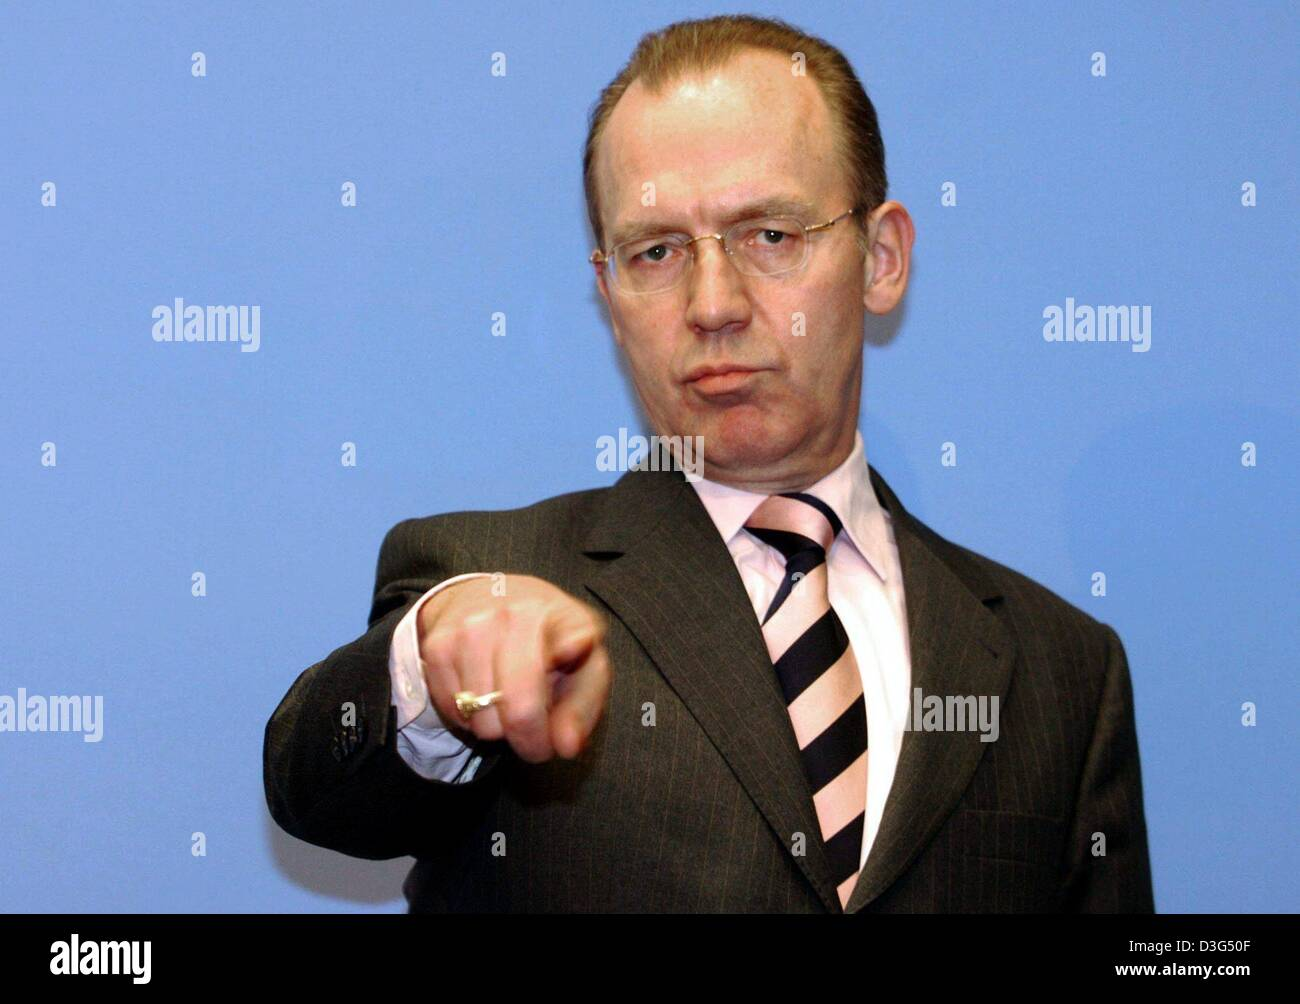 (dpa) - Florian Gerster, Chairman of the board of the Federal Employment Office (Bundesanstalt fuer Arbeit), gestures - Stock Image